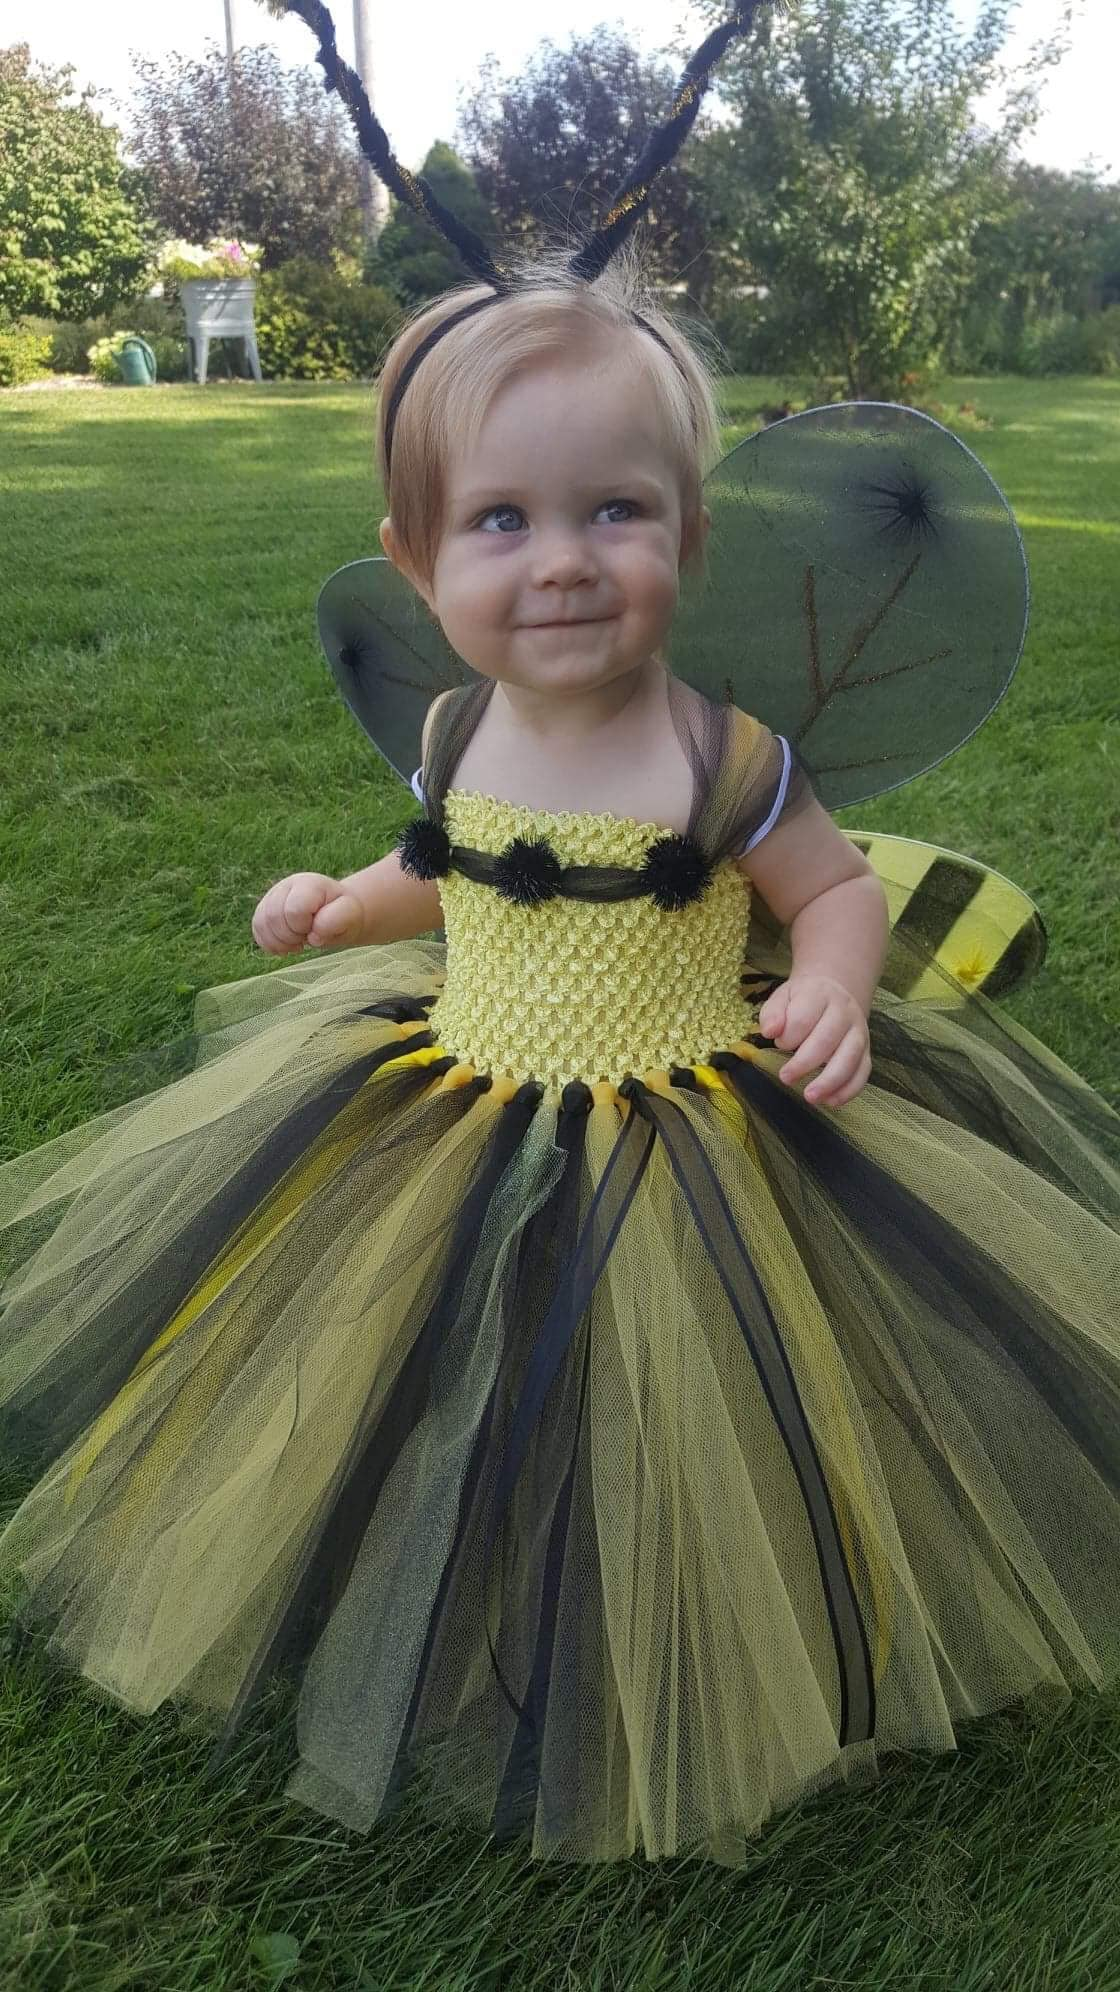 Bumble Bee Costume Bumble Bee Tutu With Wings And Headband Bumble